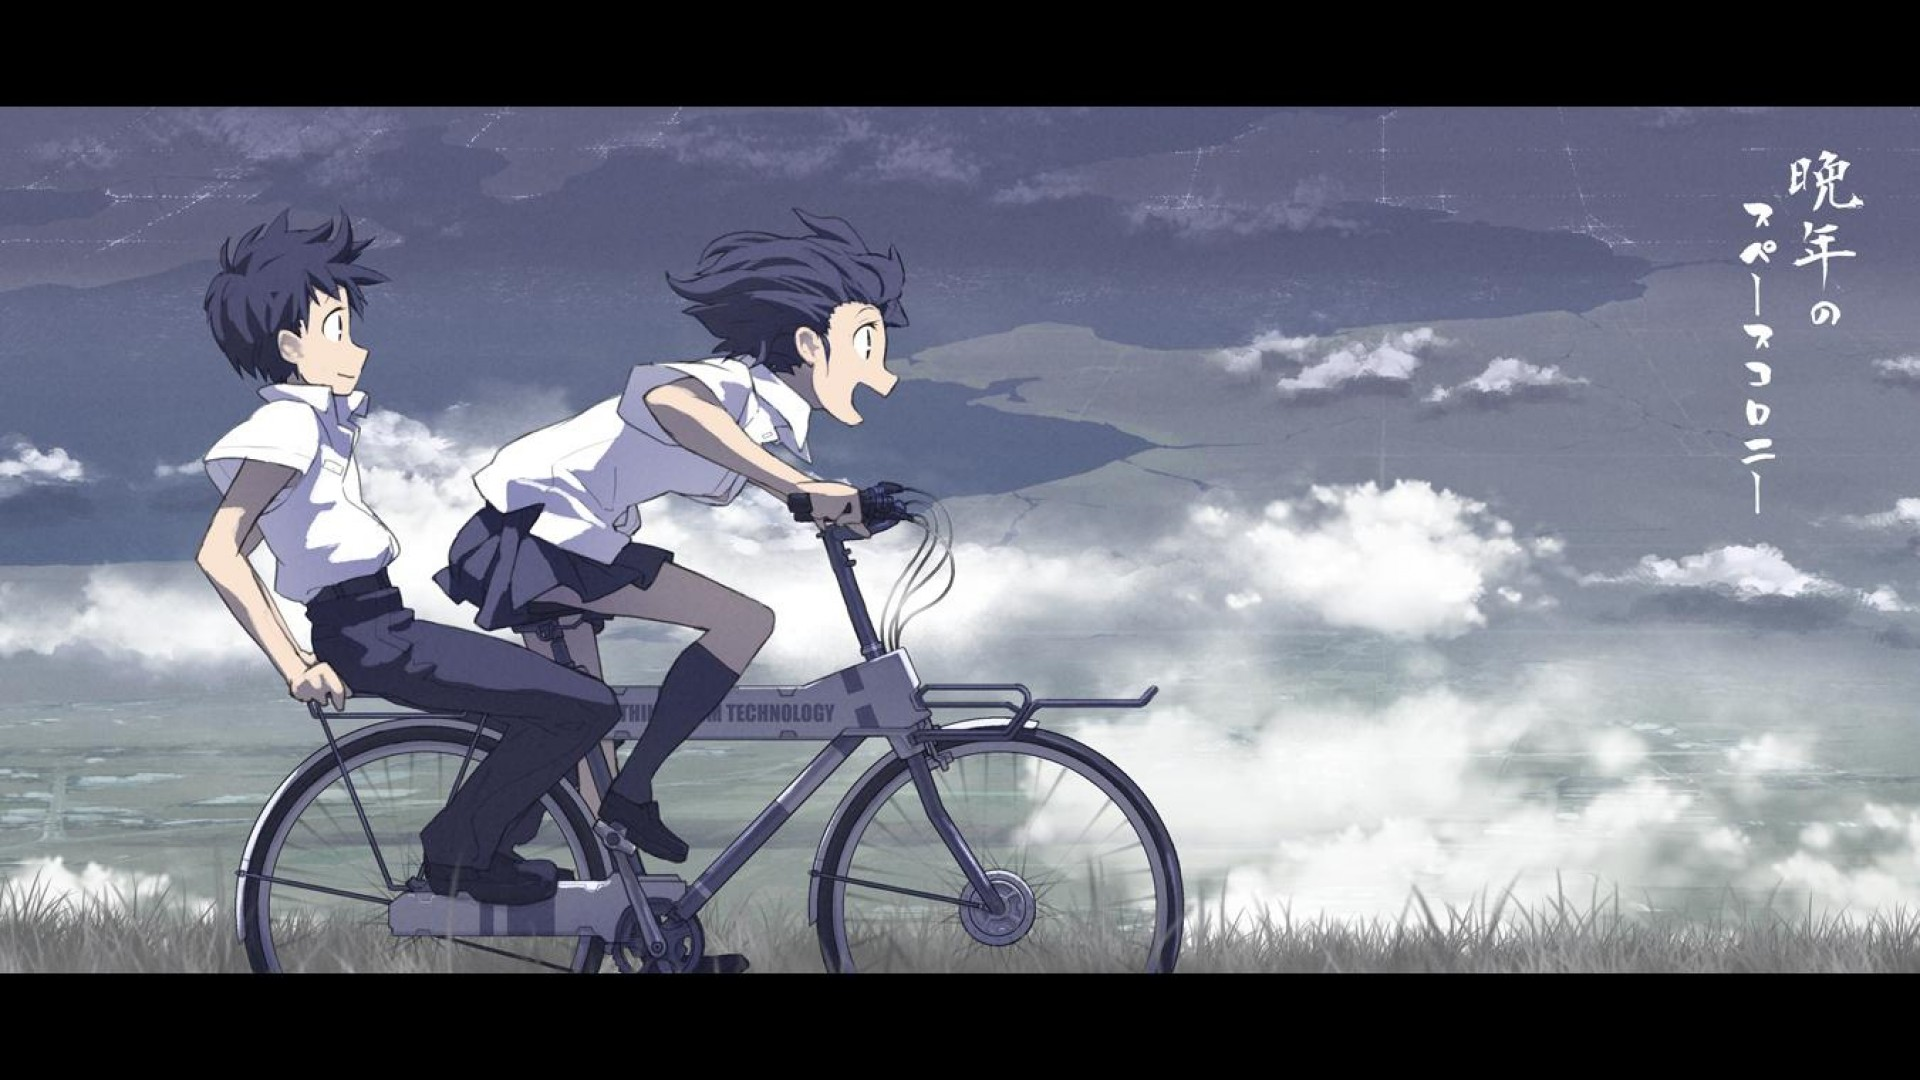 Anime Boys Riding A Bicycle Hd Wallpaper Iphone 7 Plus